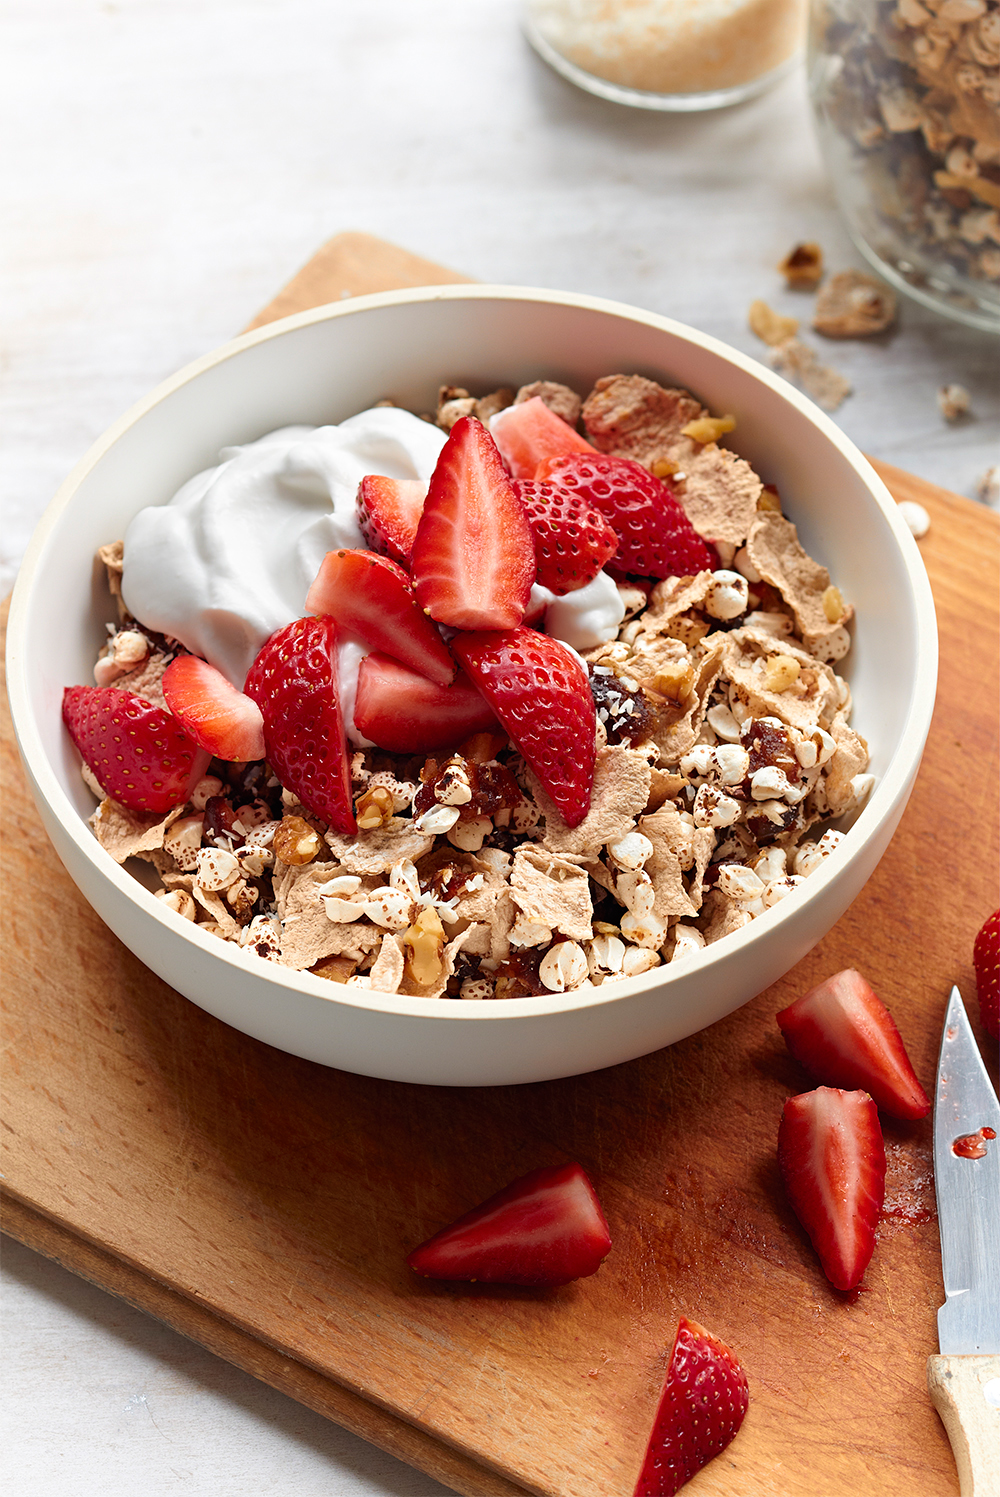 The sirtfood diet everything you need to know chocolate included sirtfood diet sirt muesli forumfinder Choice Image